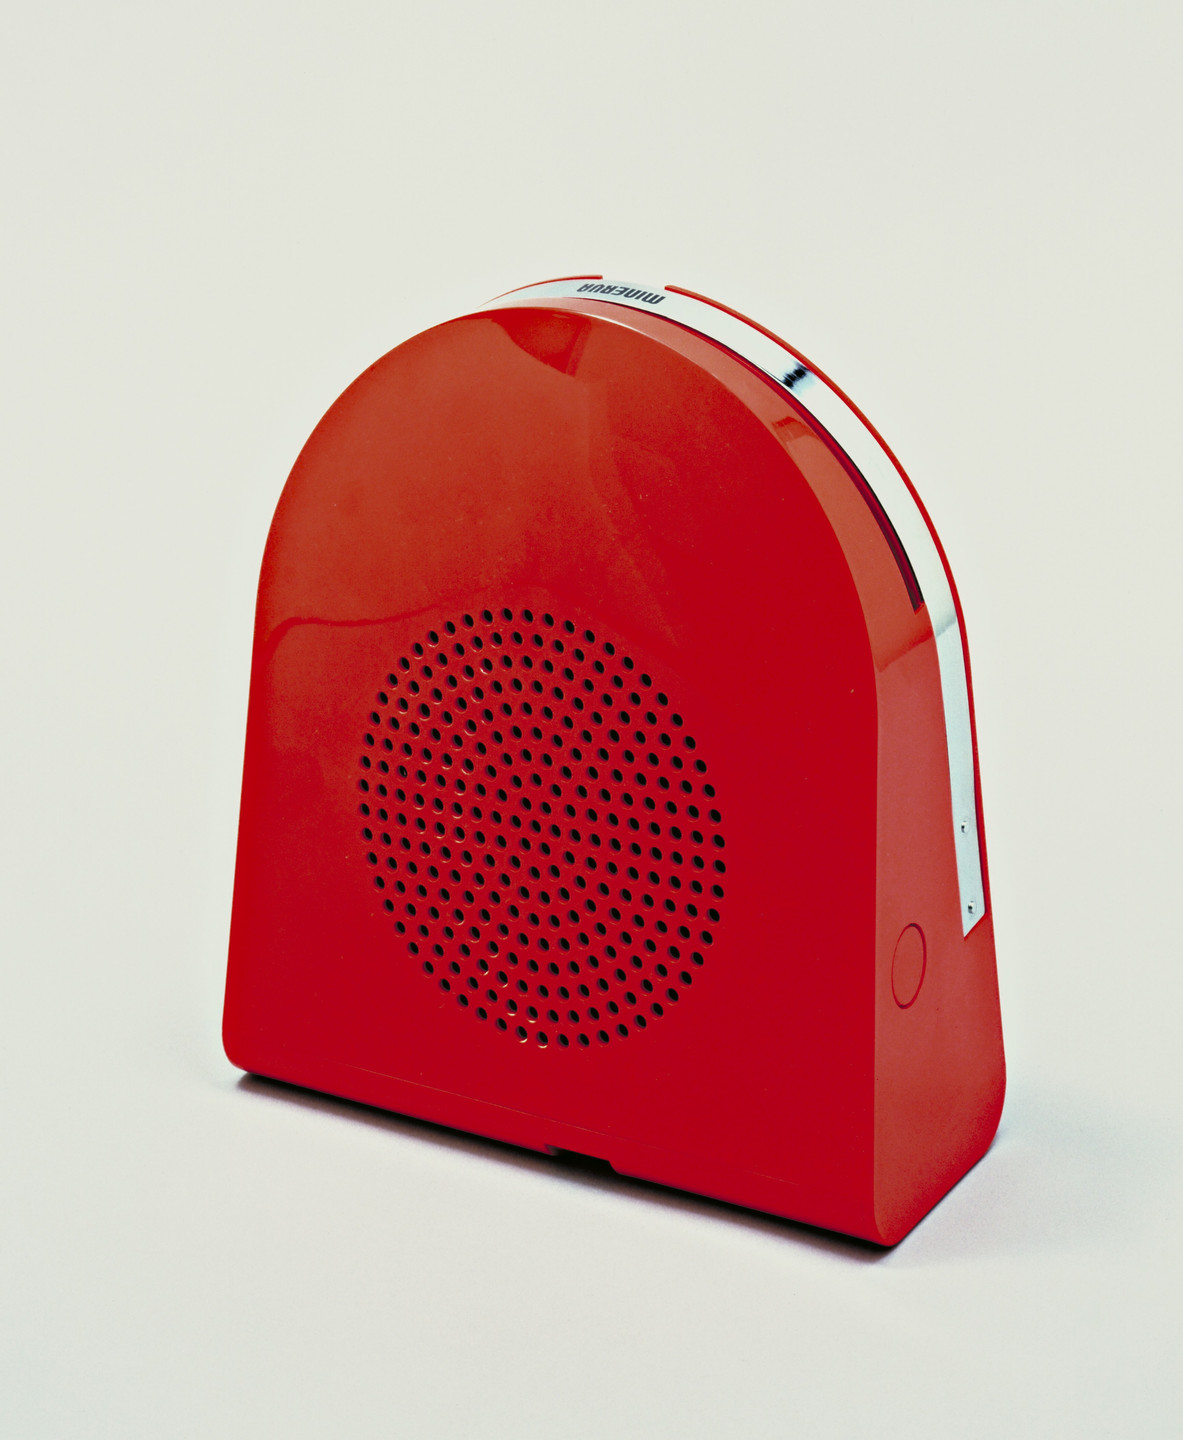 Mario Bellini. Pop Automatic Record Player (model GA 45). 1968